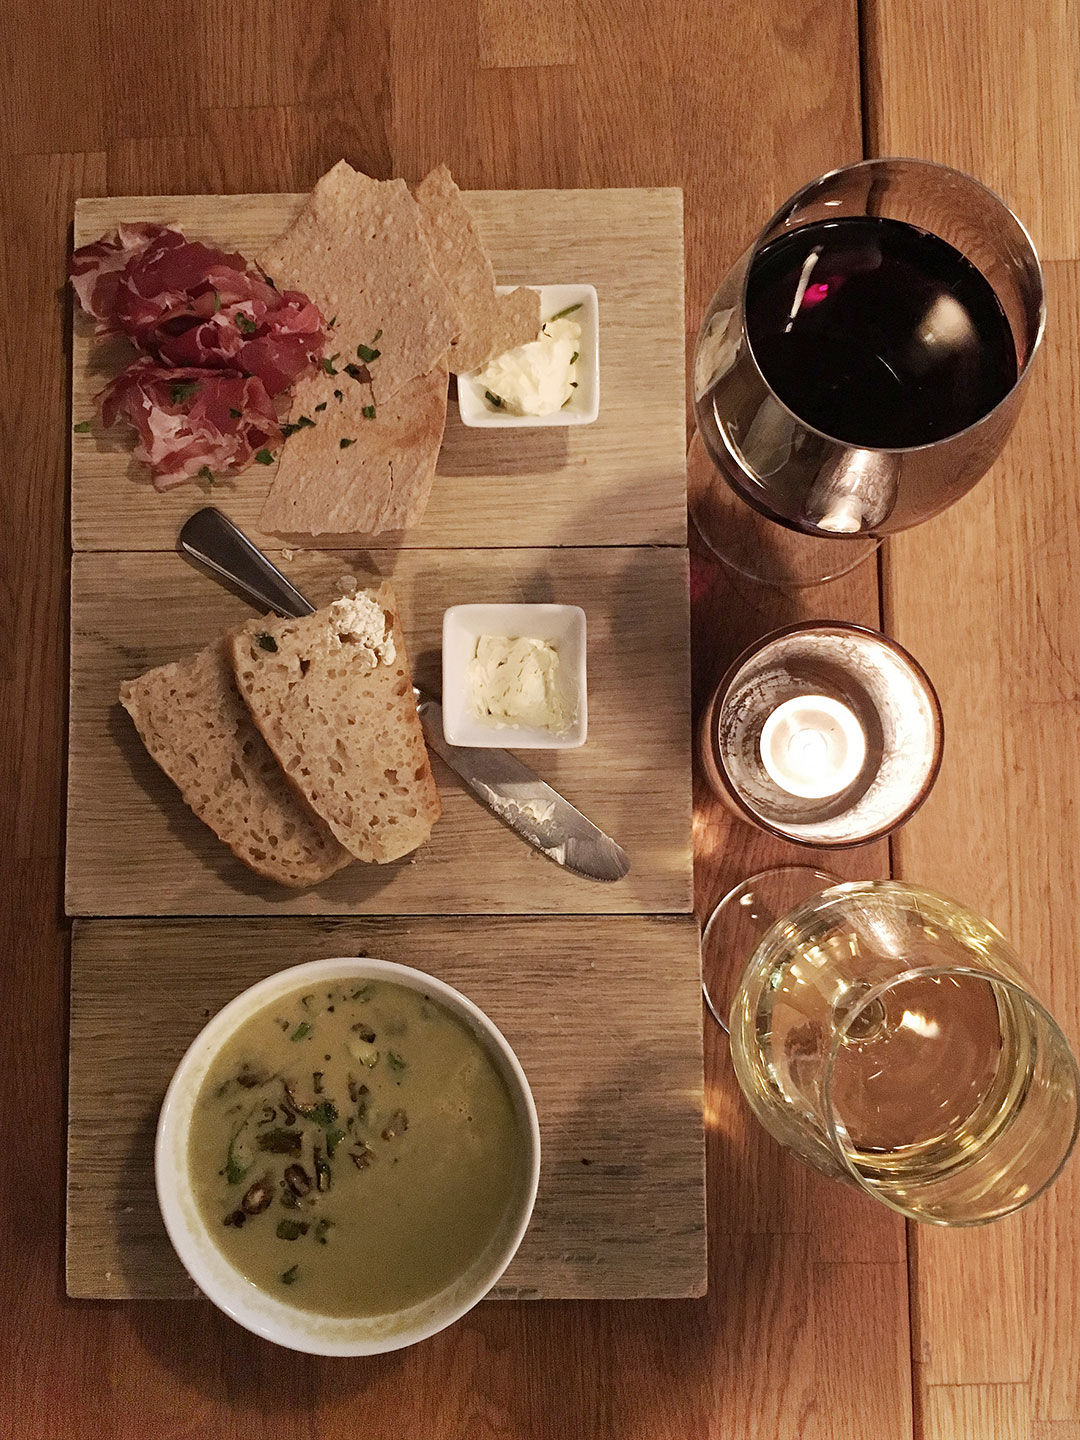 Where to Eat in Norway